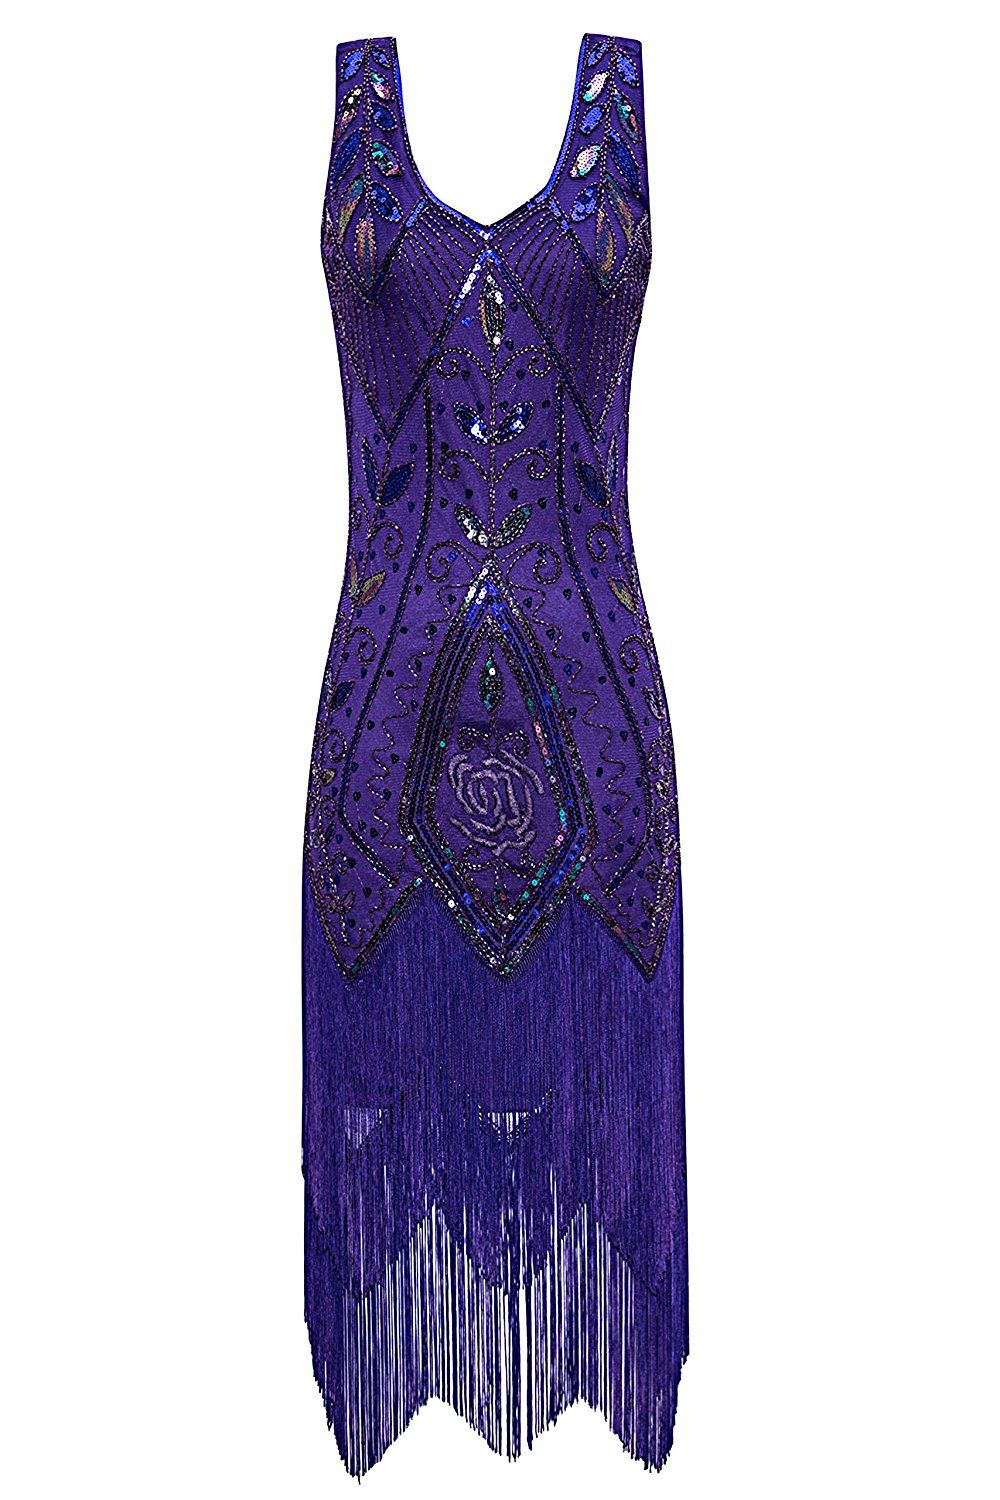 76b0aef7c05a Amazon.com  Metme Women s 1920s Vintage Flapper Fringe Beaded Great Gatsby  Party Dress